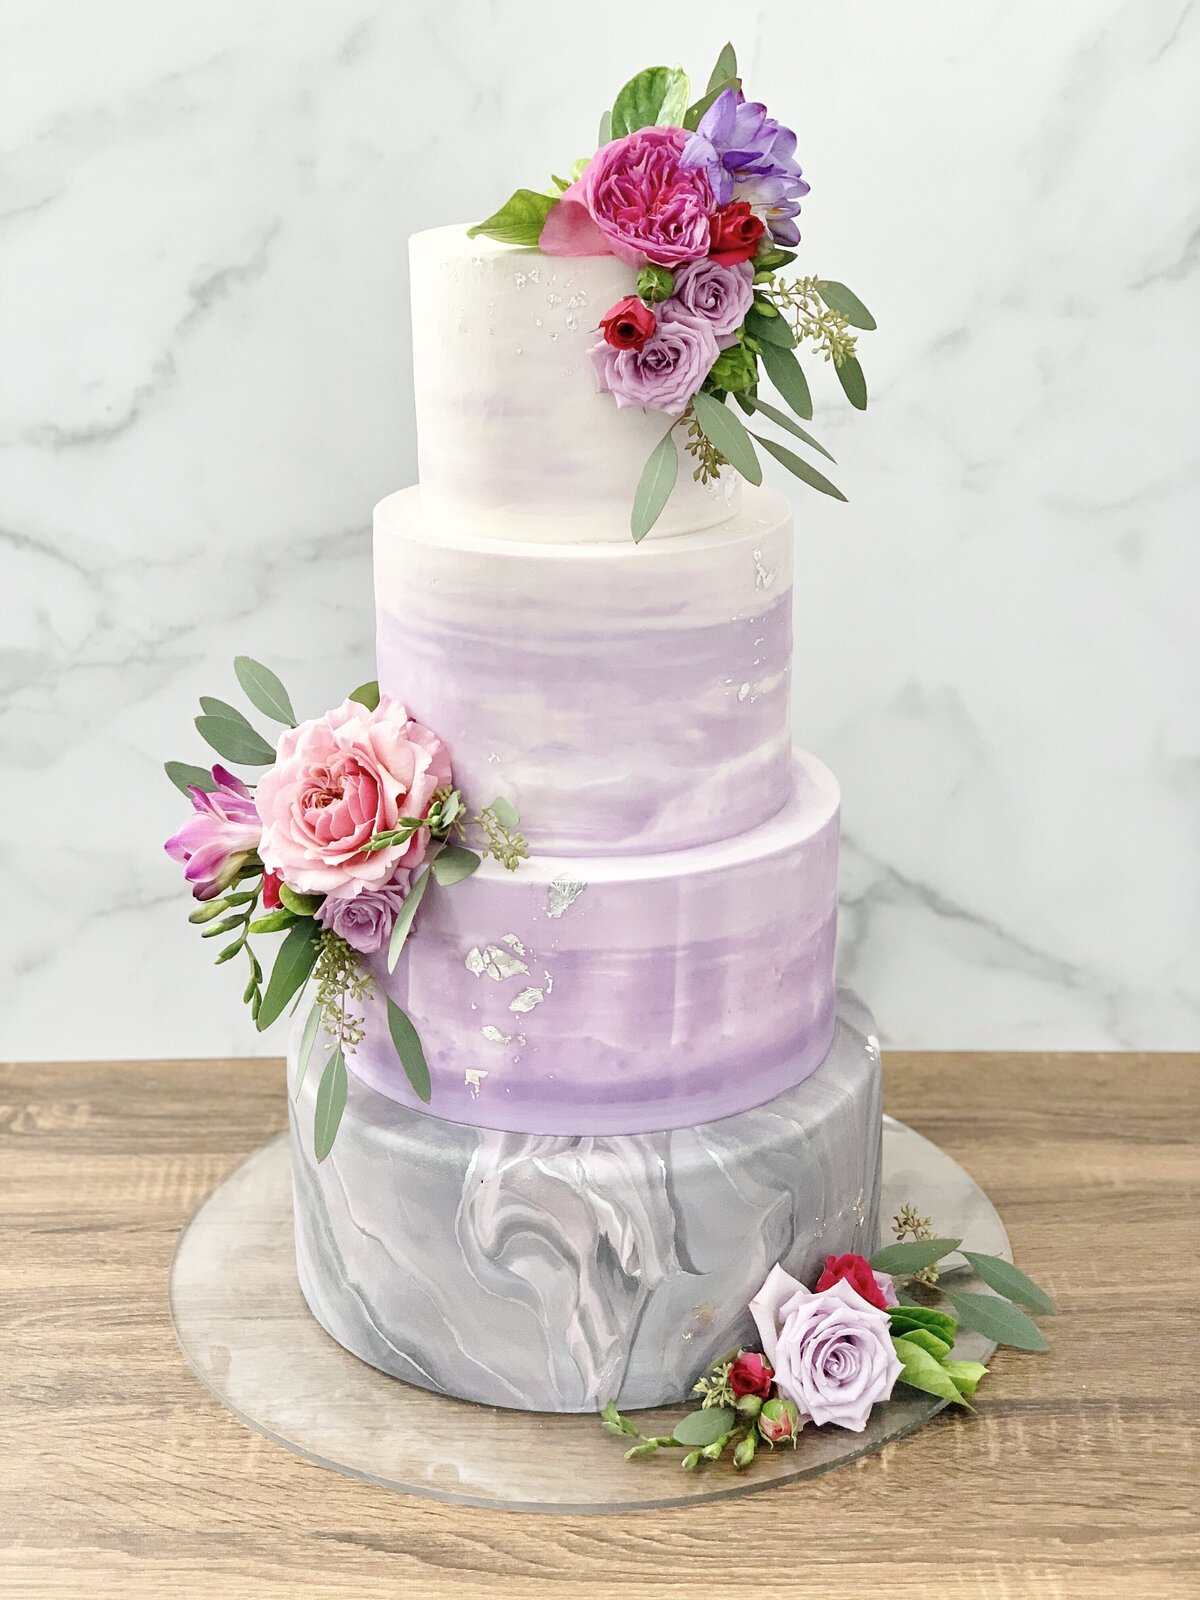 Buttercreamsmooth.fondant.colorfulpurple.ombre.floralbunches.ADE